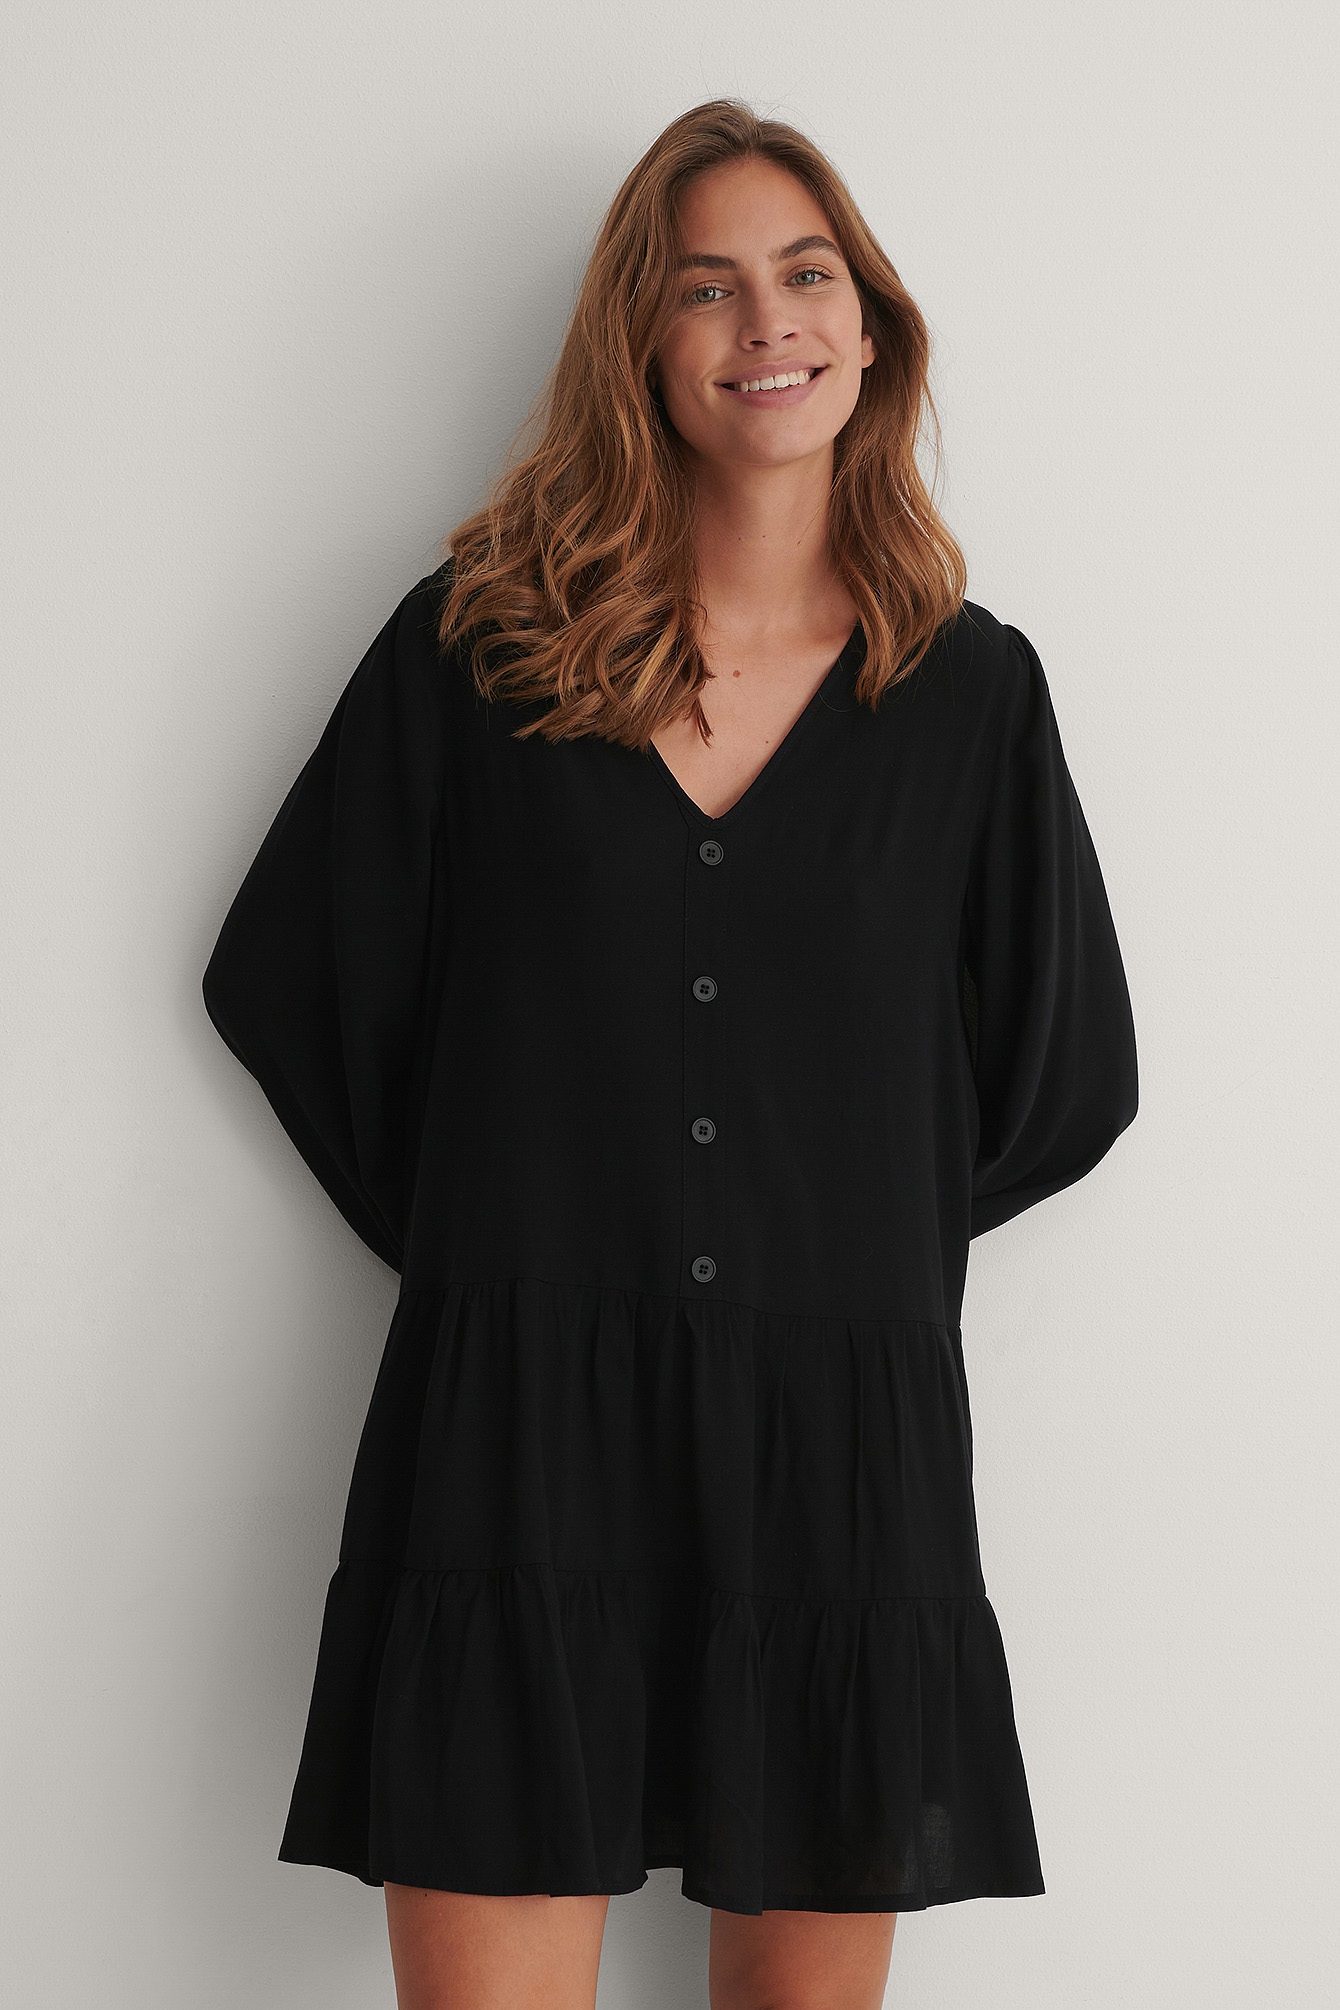 Black Buttoned Flowy V-Neck Dress